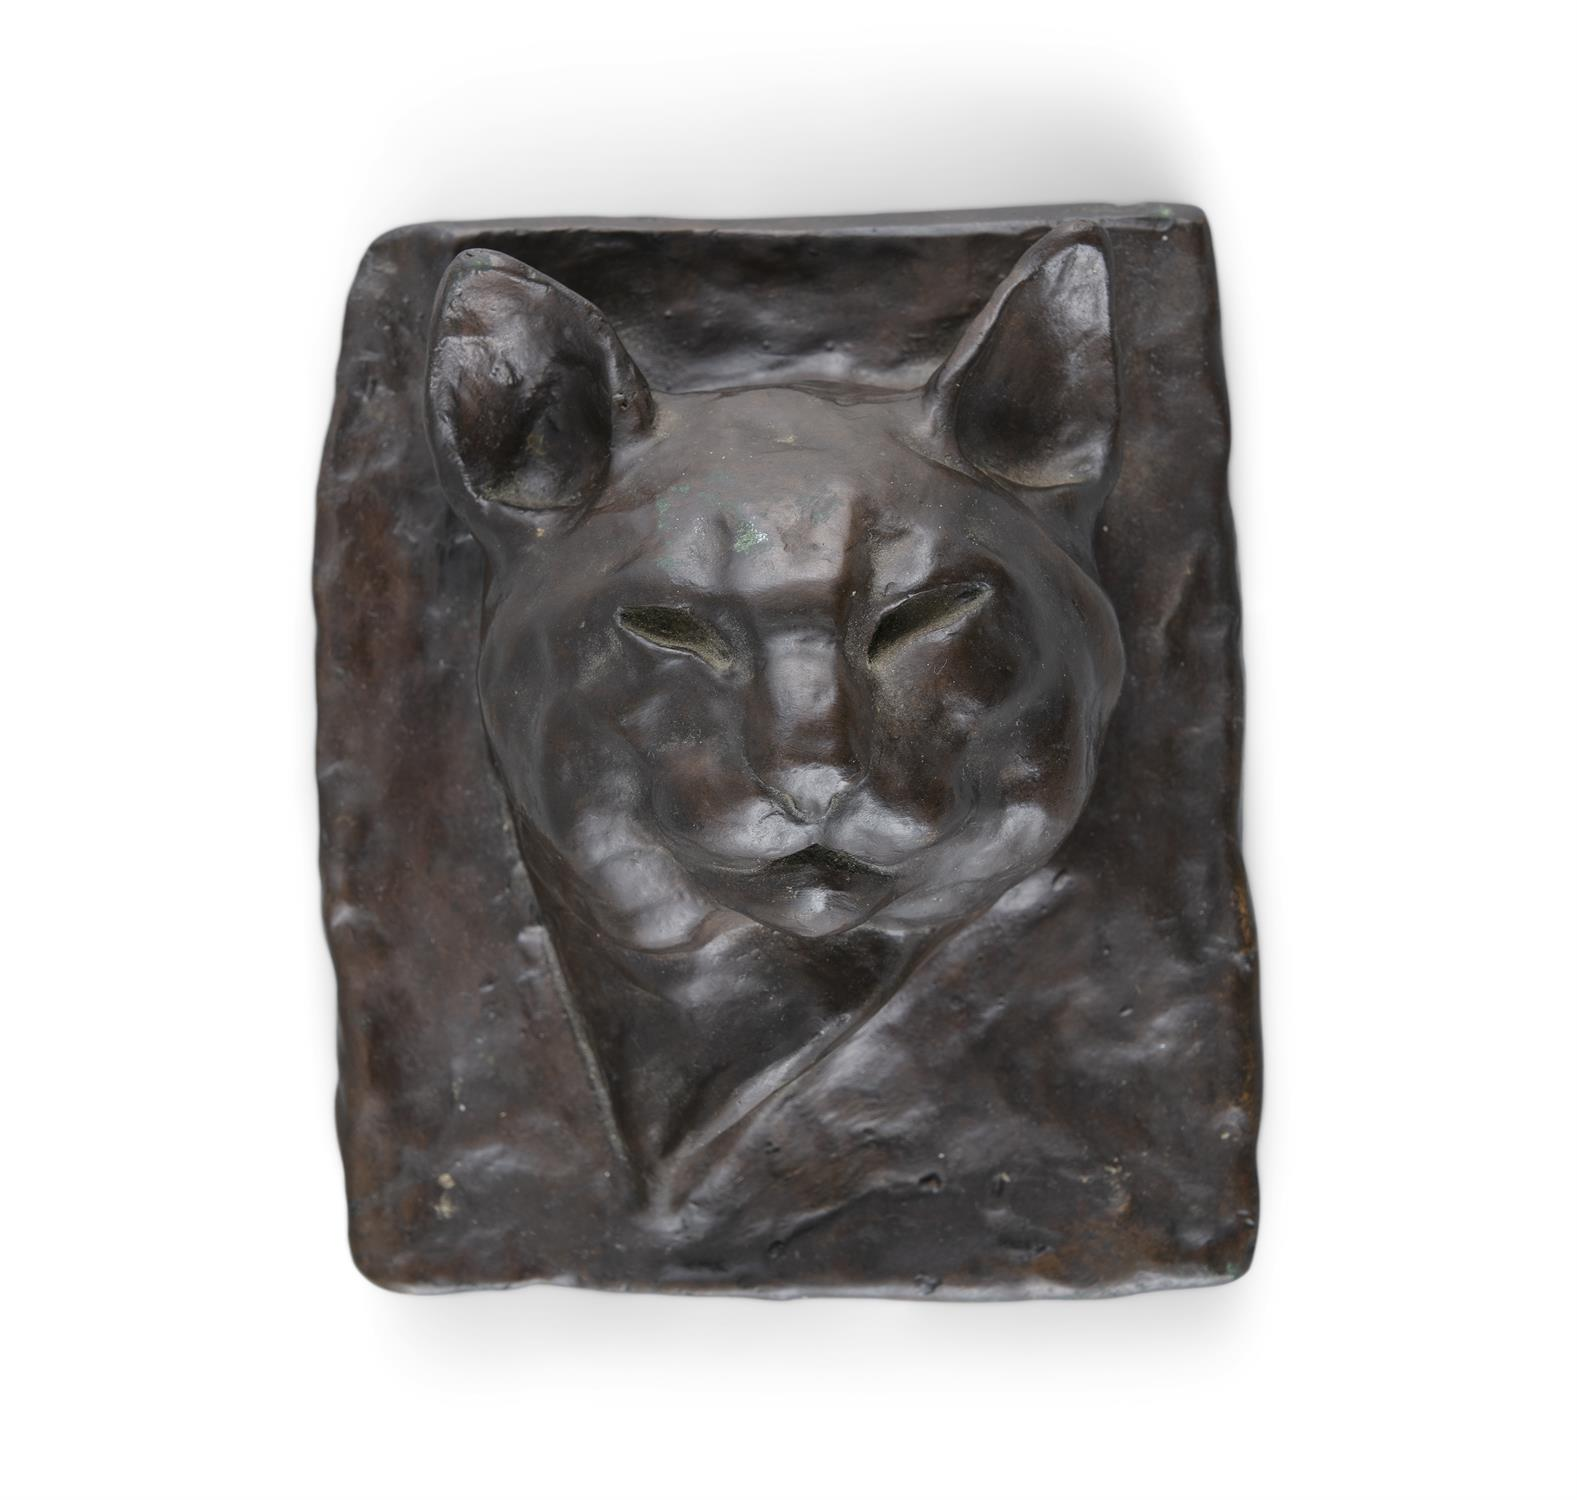 Melanie Le Brocquy HRHA (1919-2018) Cat Bronze, 17 x 14.5cm (6¾ x 5¾'') Signed and numbered 3/6